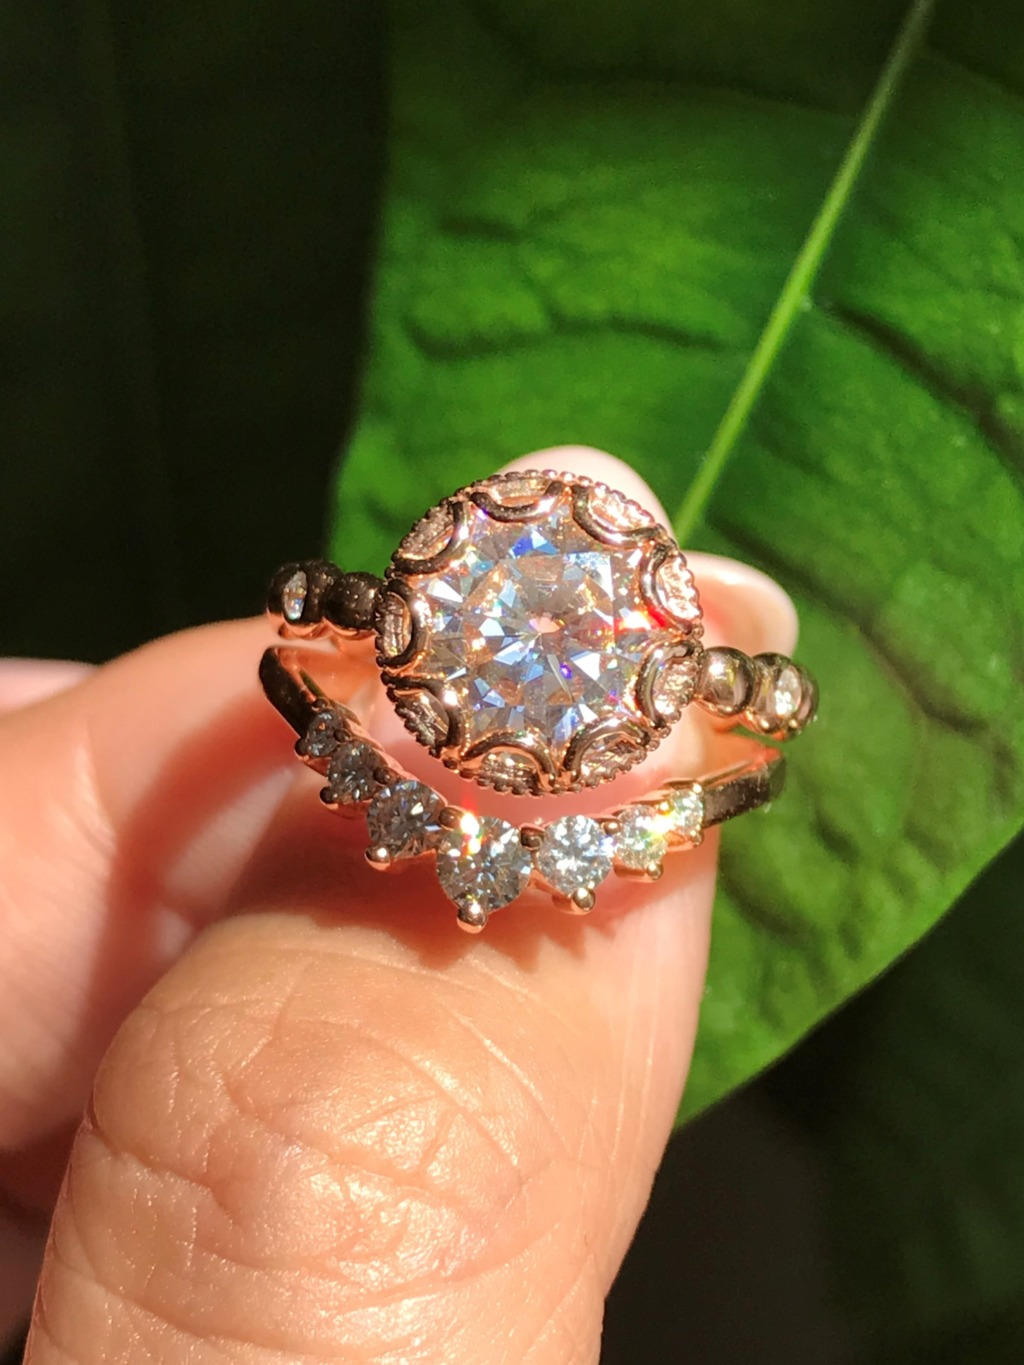 Elegant bridal set of a round cut moissanite engagement ring in 14k rose gold floral ring setting pairs gorgeously with a curved 7